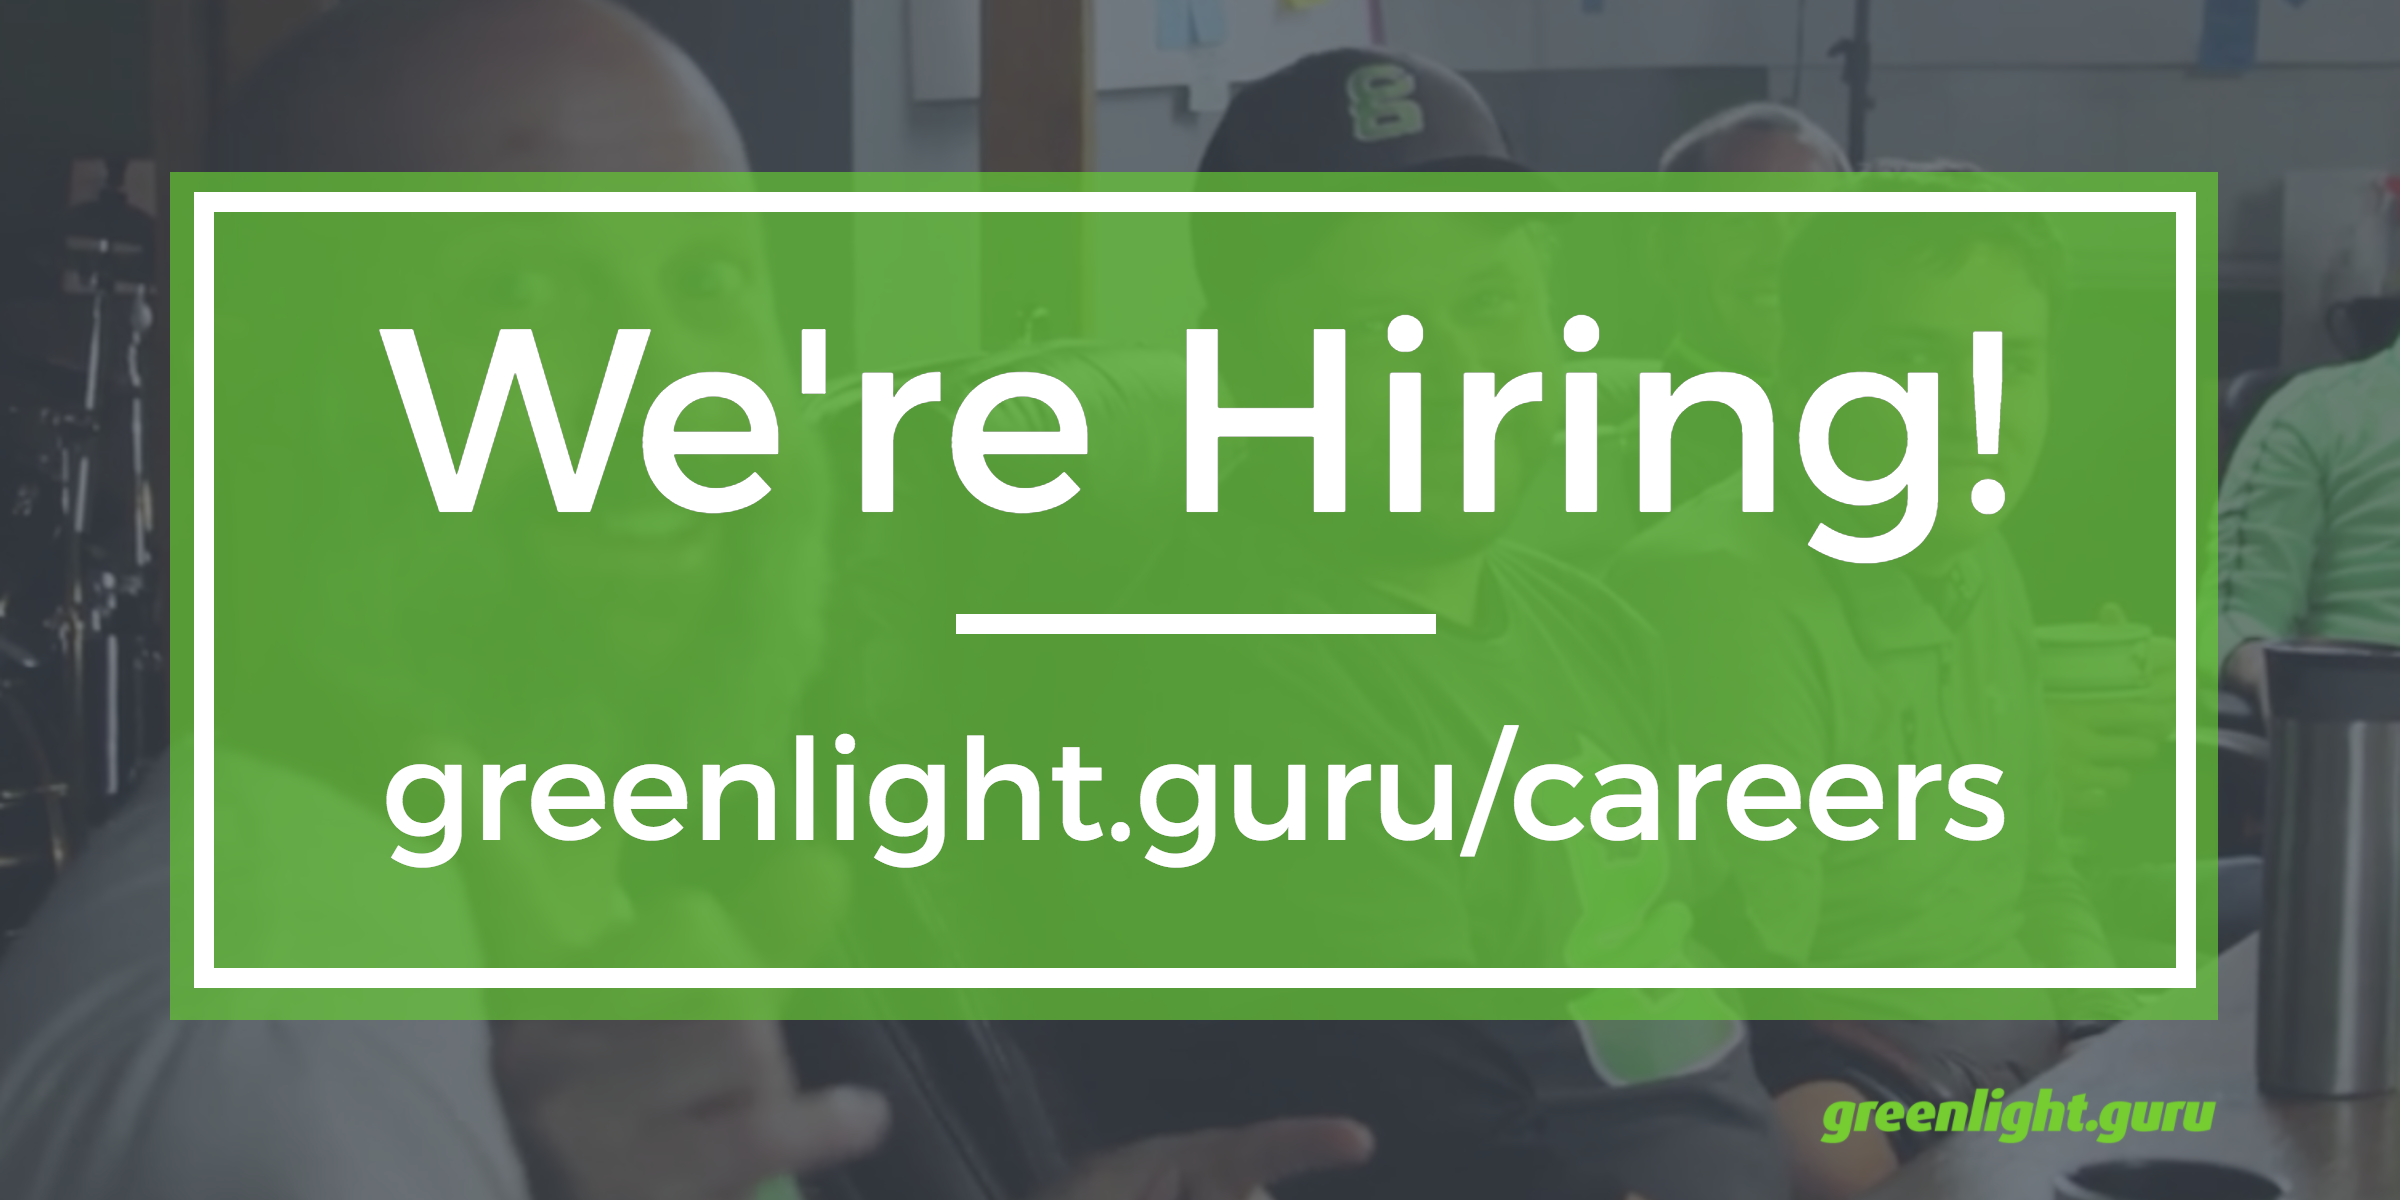 Looking to join a fun, fast growing SaaS company? greenlight.guru is hiring in all areas! - Featured Image